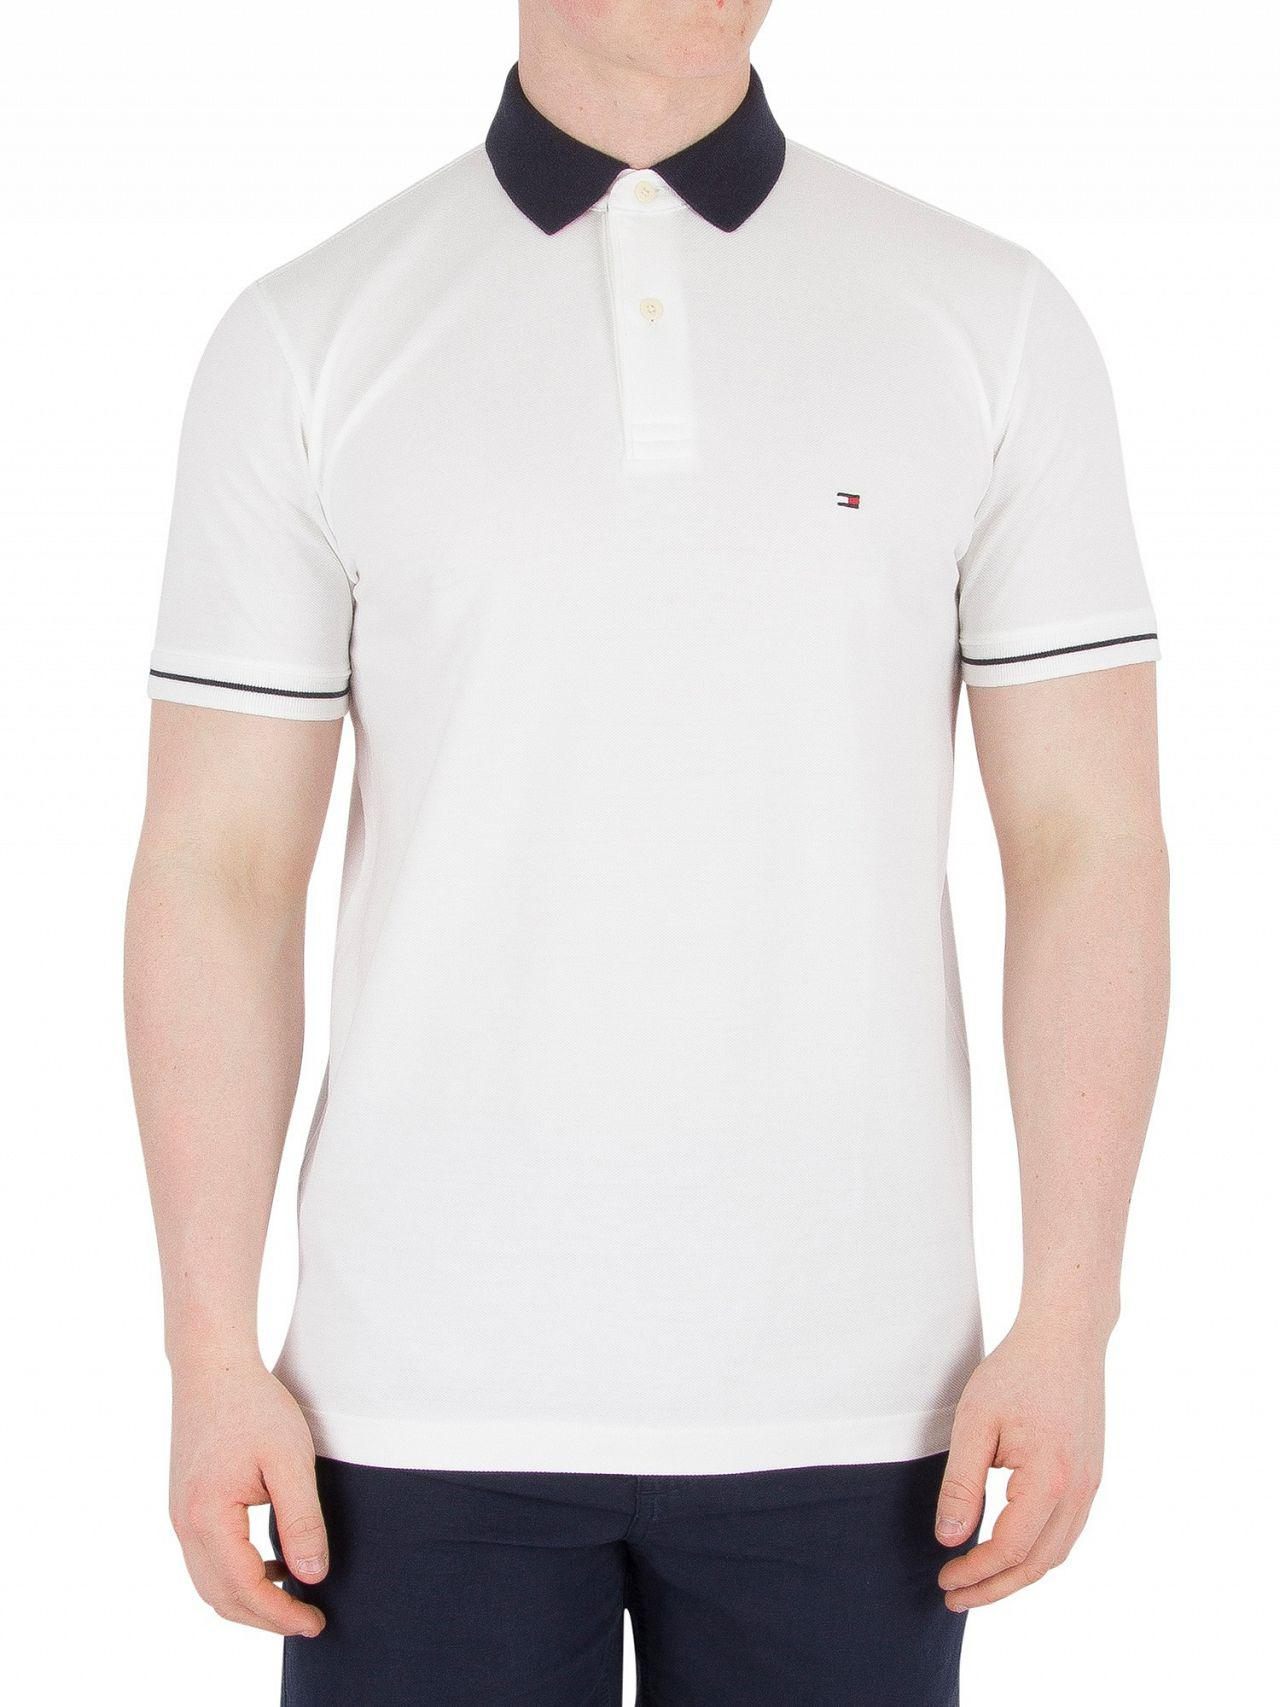 723087fc7 Tommy Hilfiger Bright White 1985 Regular Fit Polo Shirt in White for ...